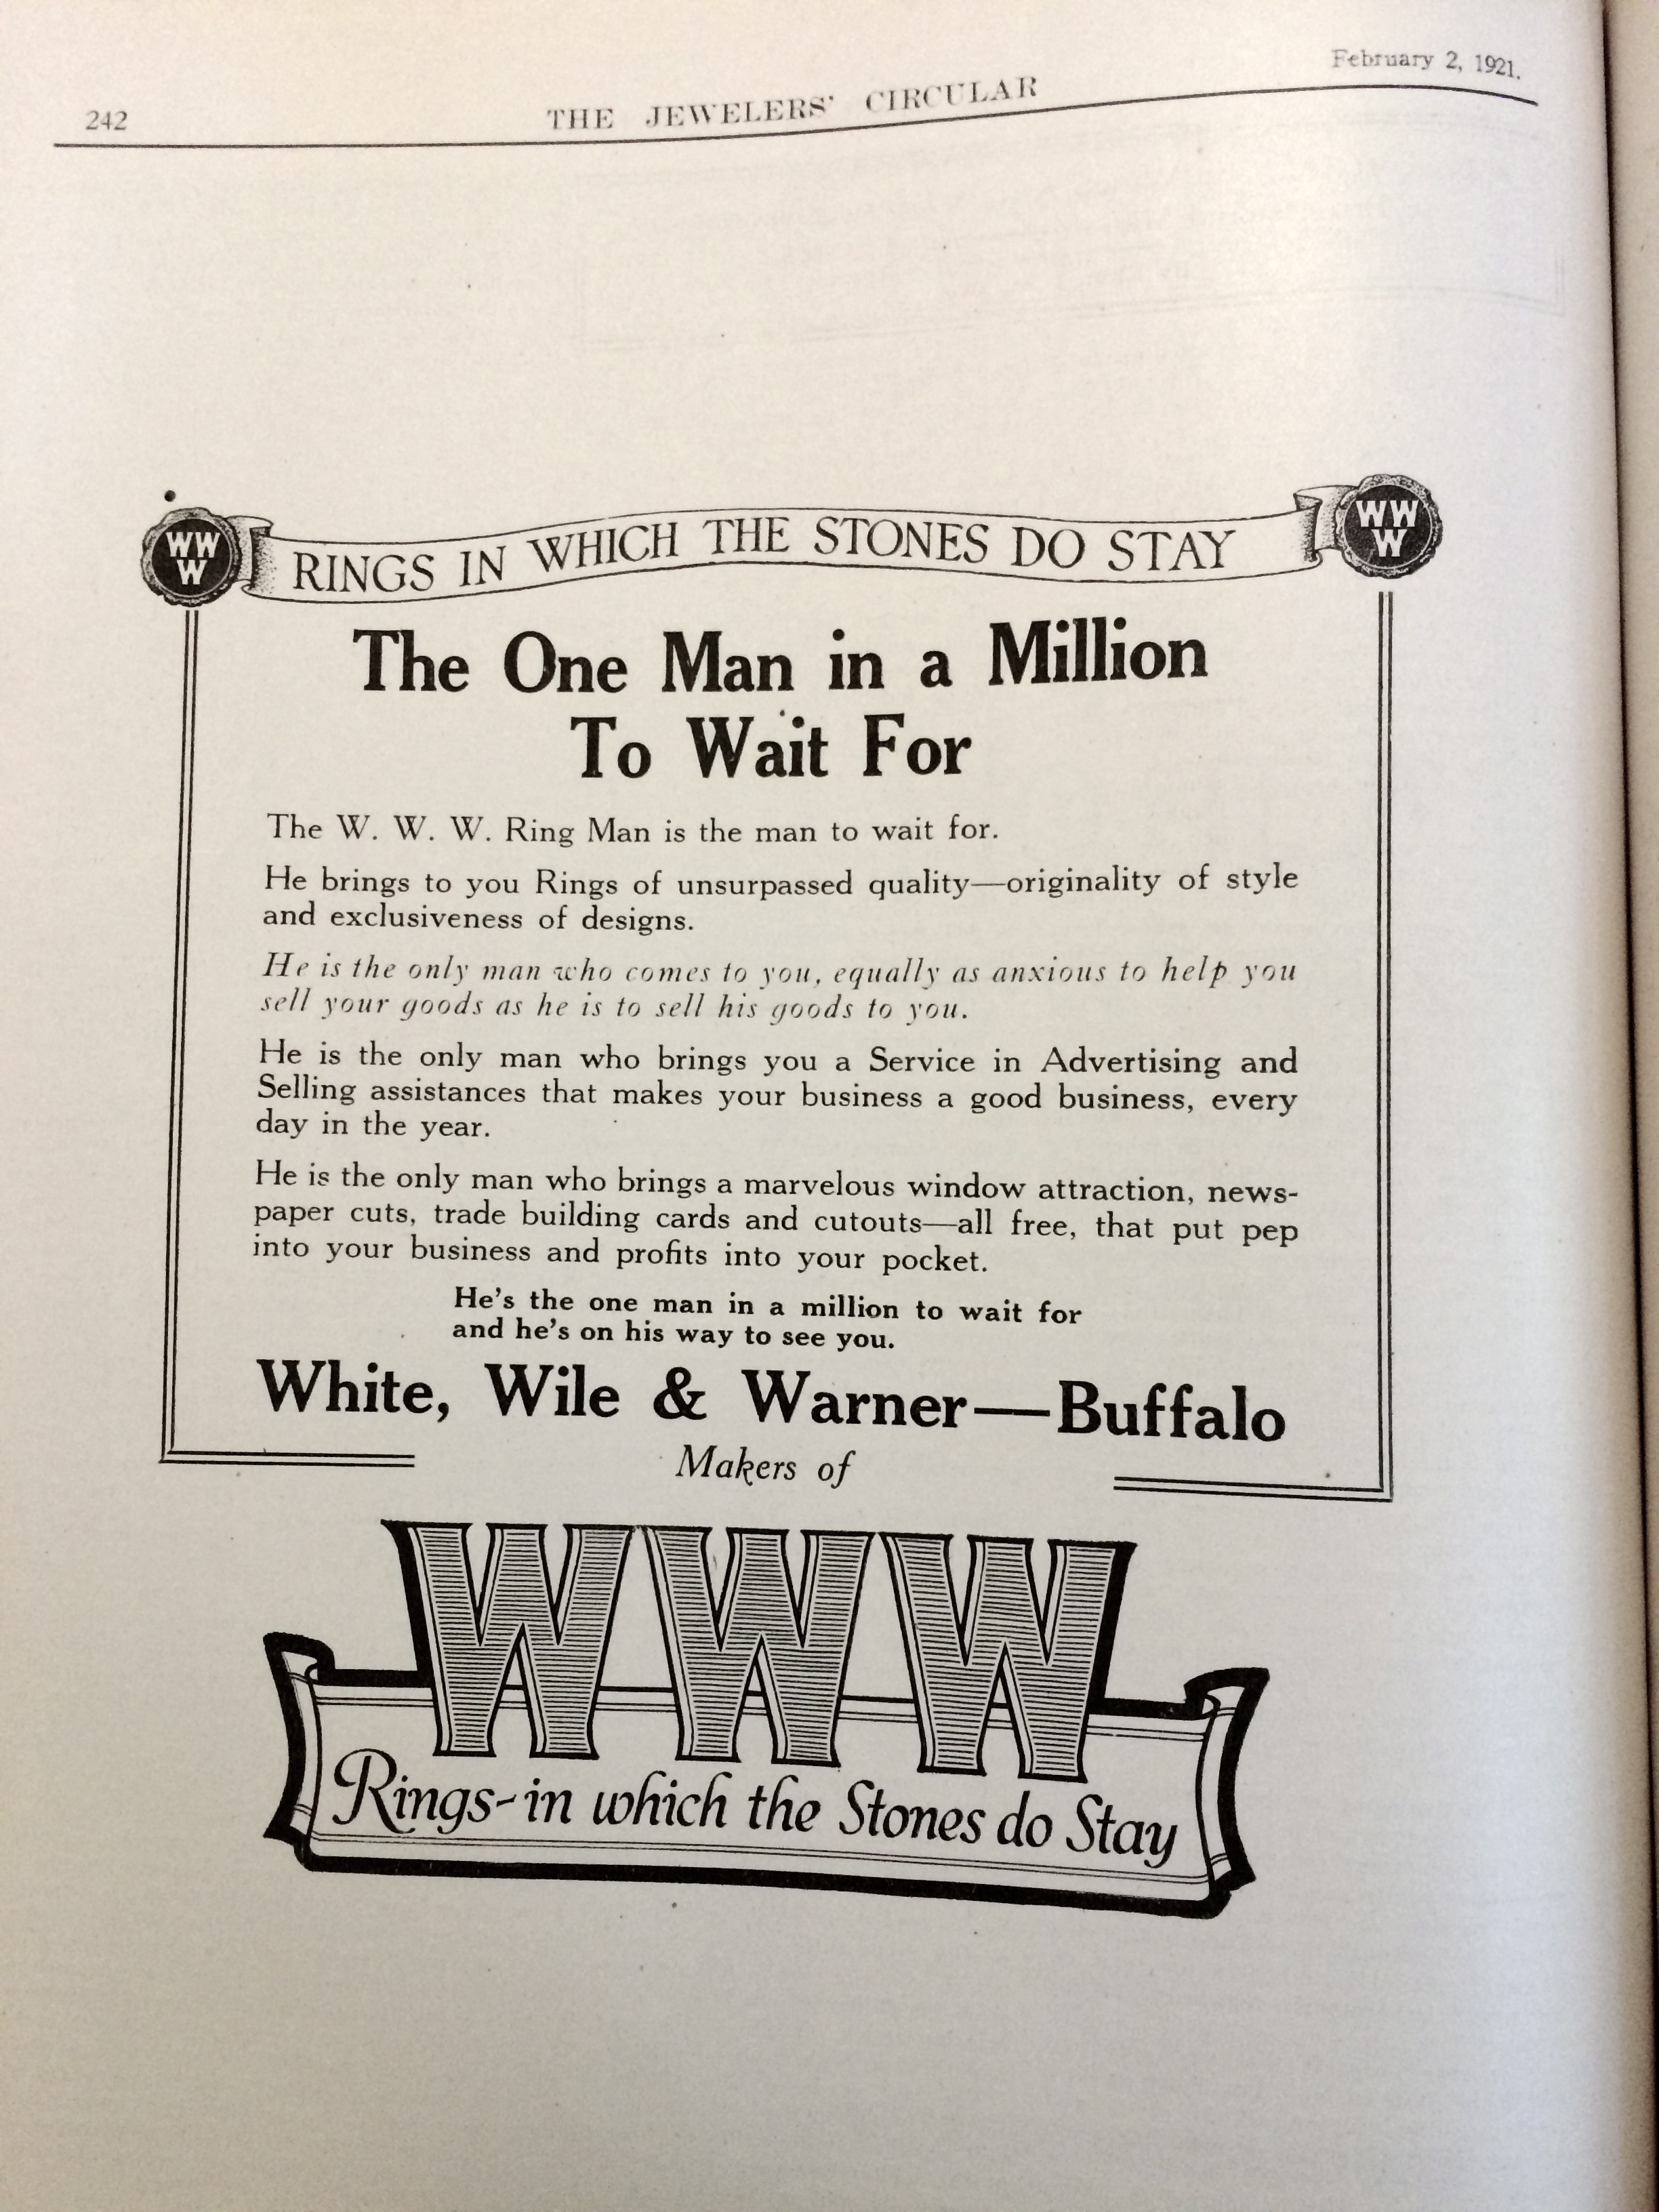 """The W.W.W. Ring Man is the man to wait for"". White, Wile, & Warner 1921 advertisement."